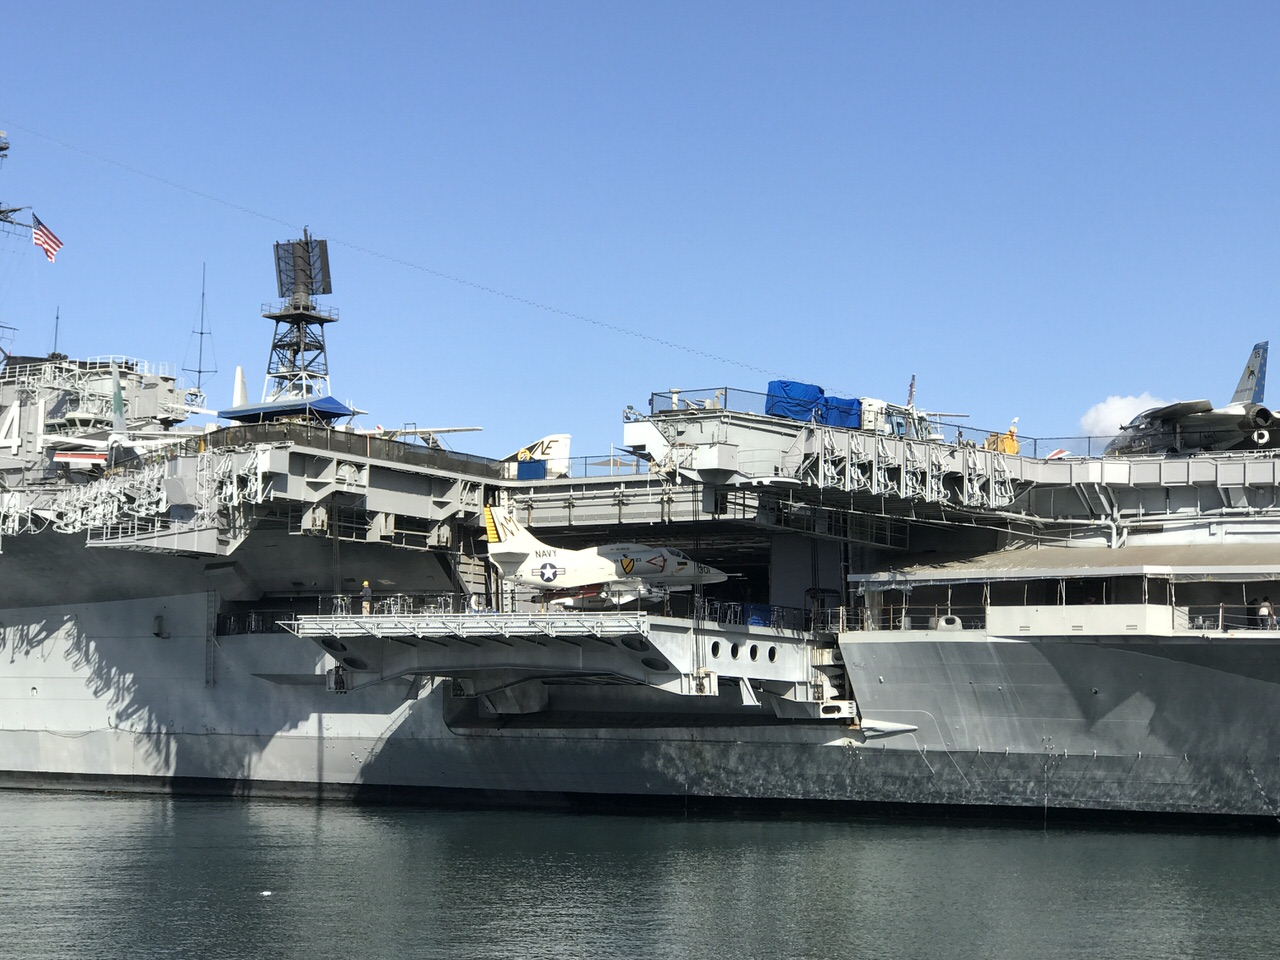 Uss midway museum 0545